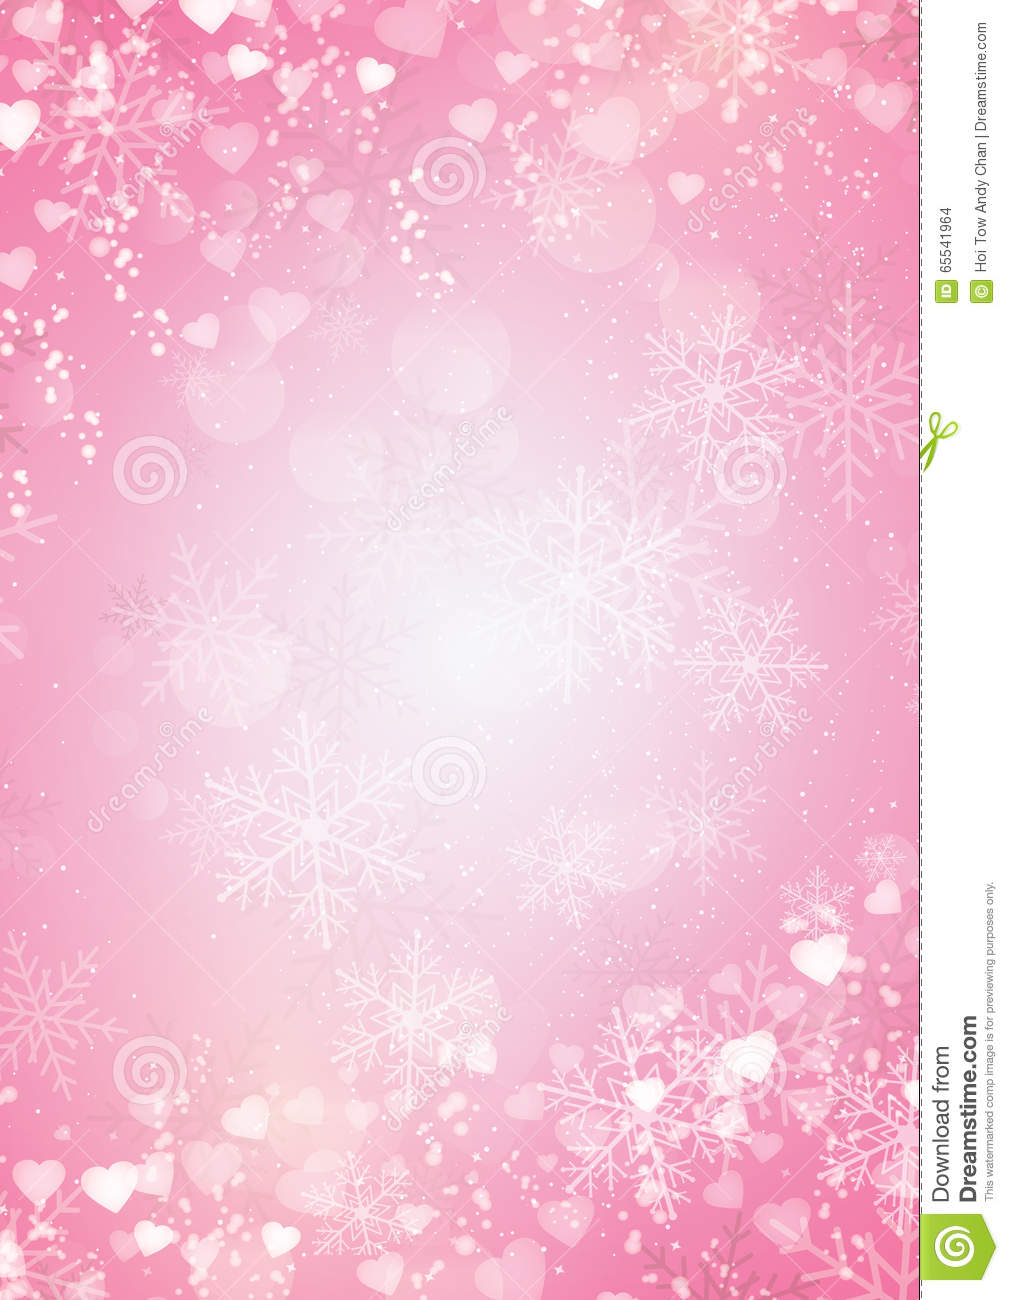 snowflake and hearts border pink background stock vector